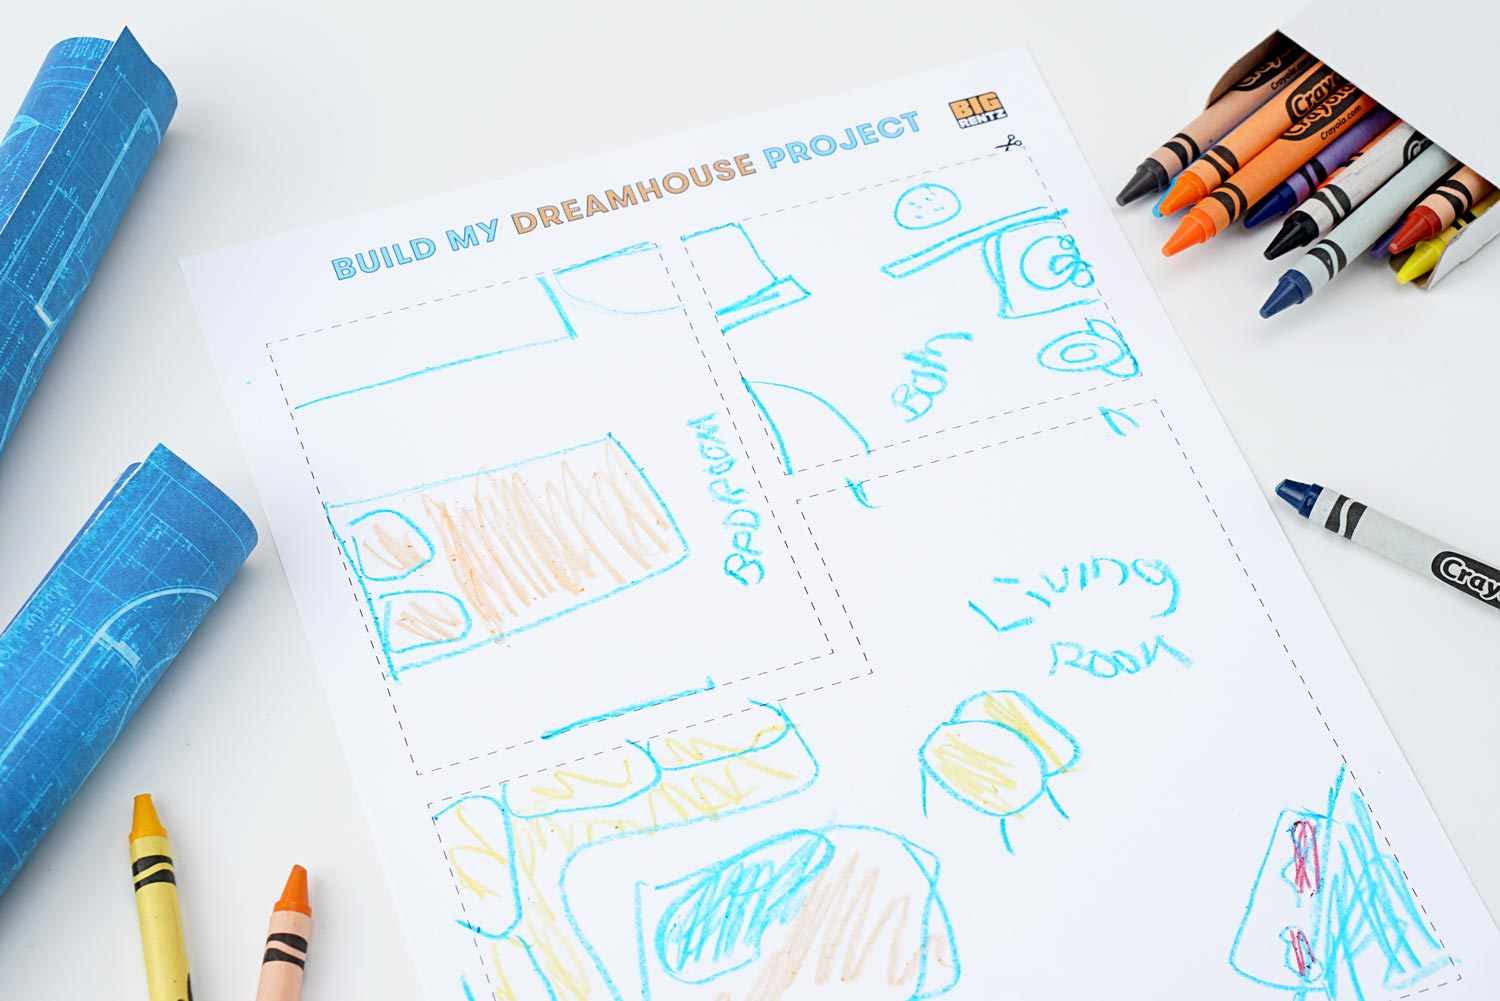 Kid's drawing of their dream house blueprint